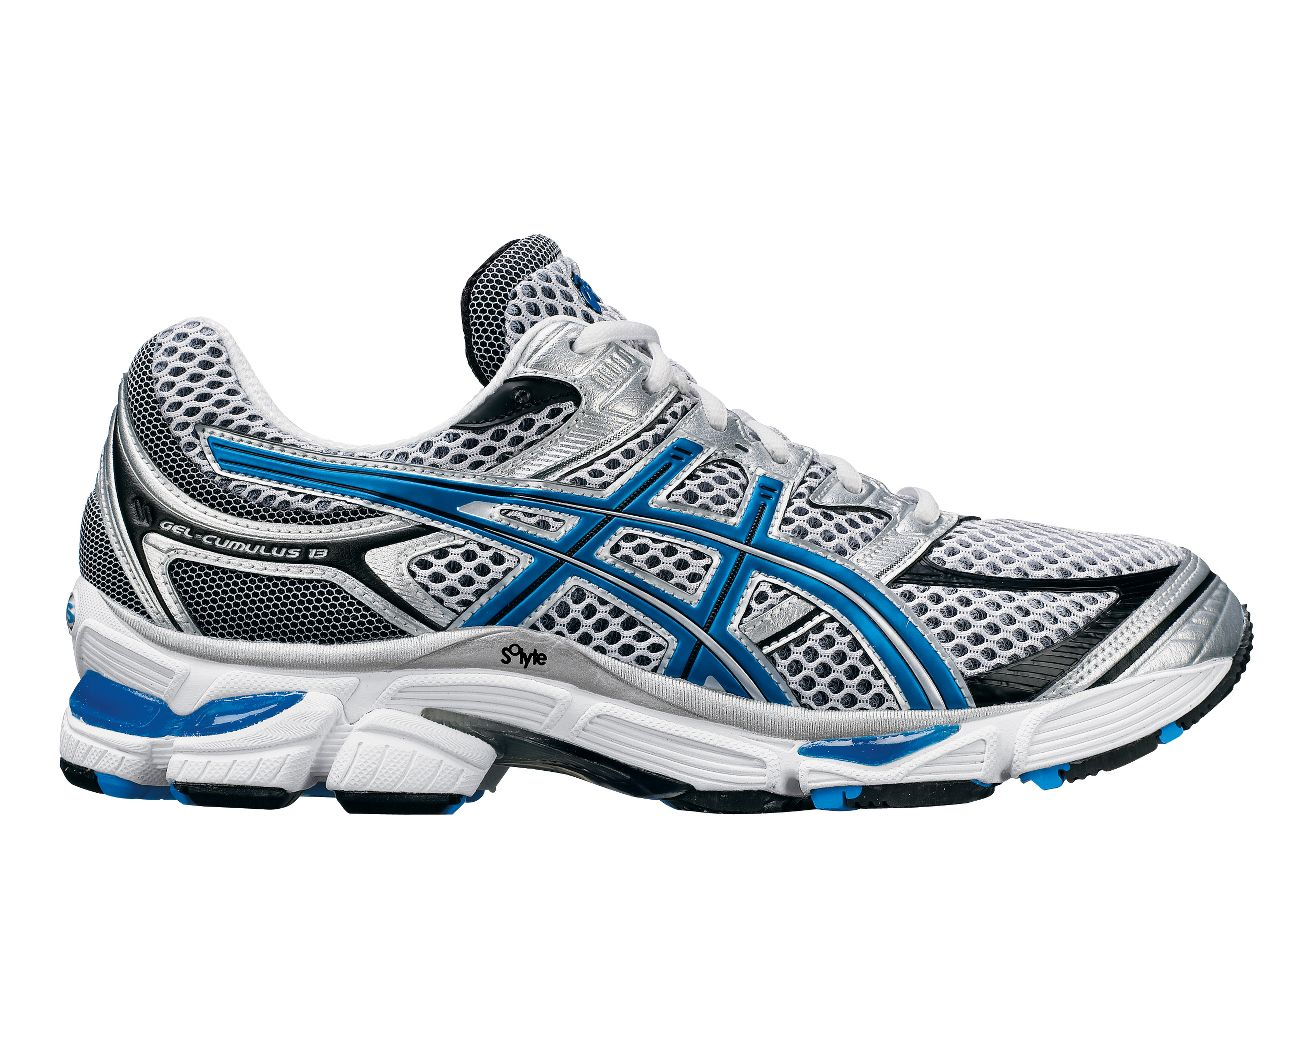 Igs Running Shoes